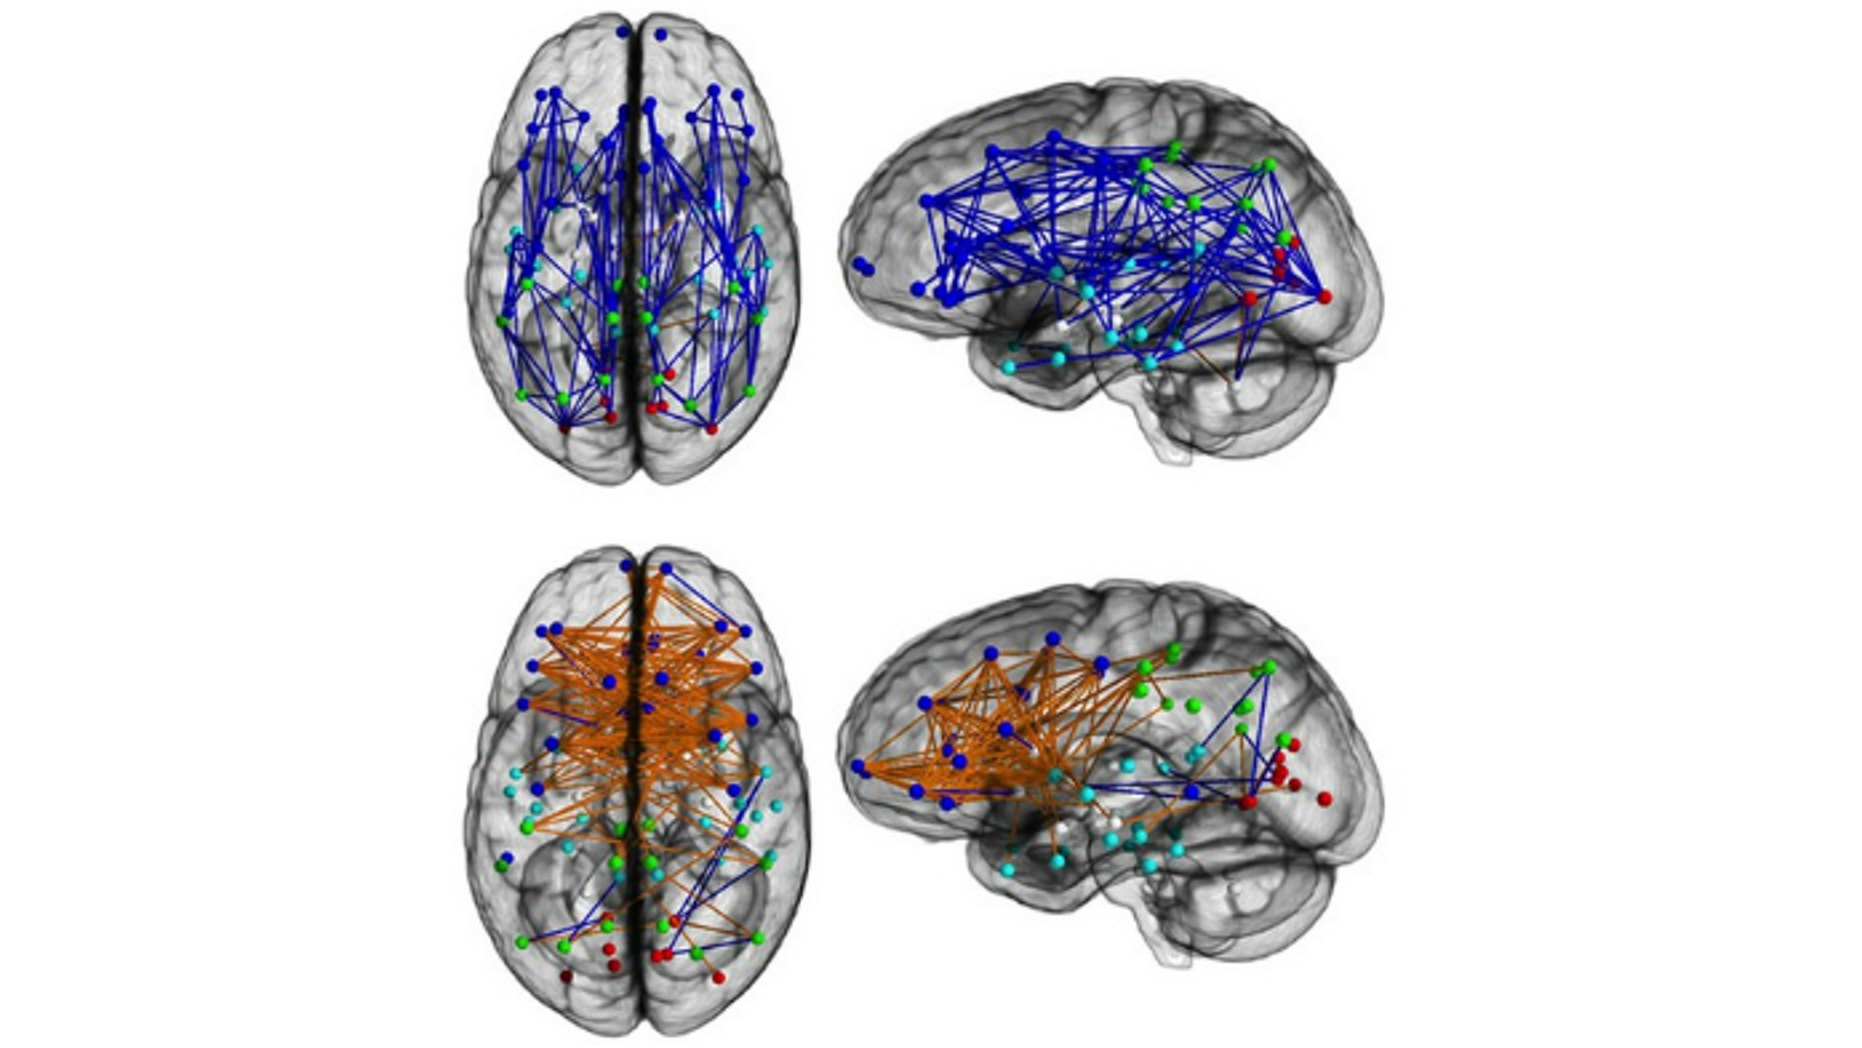 Brain networks showing significantly increased intra-hemispheric connectivity in males (Upper) and inter-hemispheric connectivity in females (Lower). Intra-hemispheric connections are shown in blue, and inter- hemispheric connections are shown in orange.